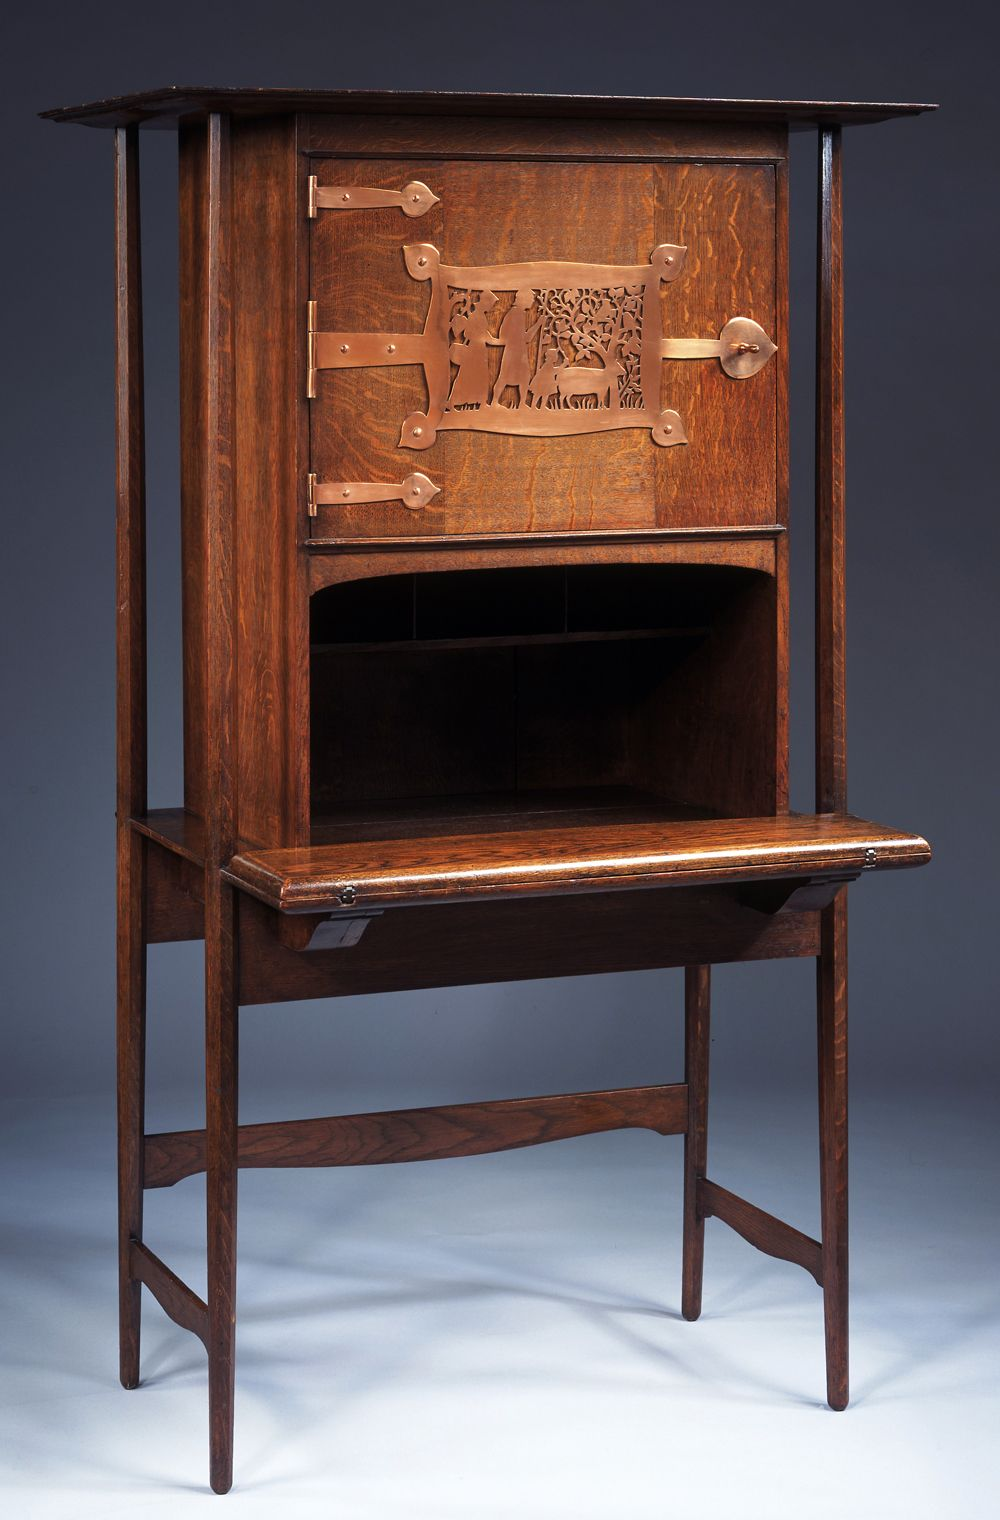 Antique arts and crafts furniture - Find This Pin And More On Arts Crafts Furniture